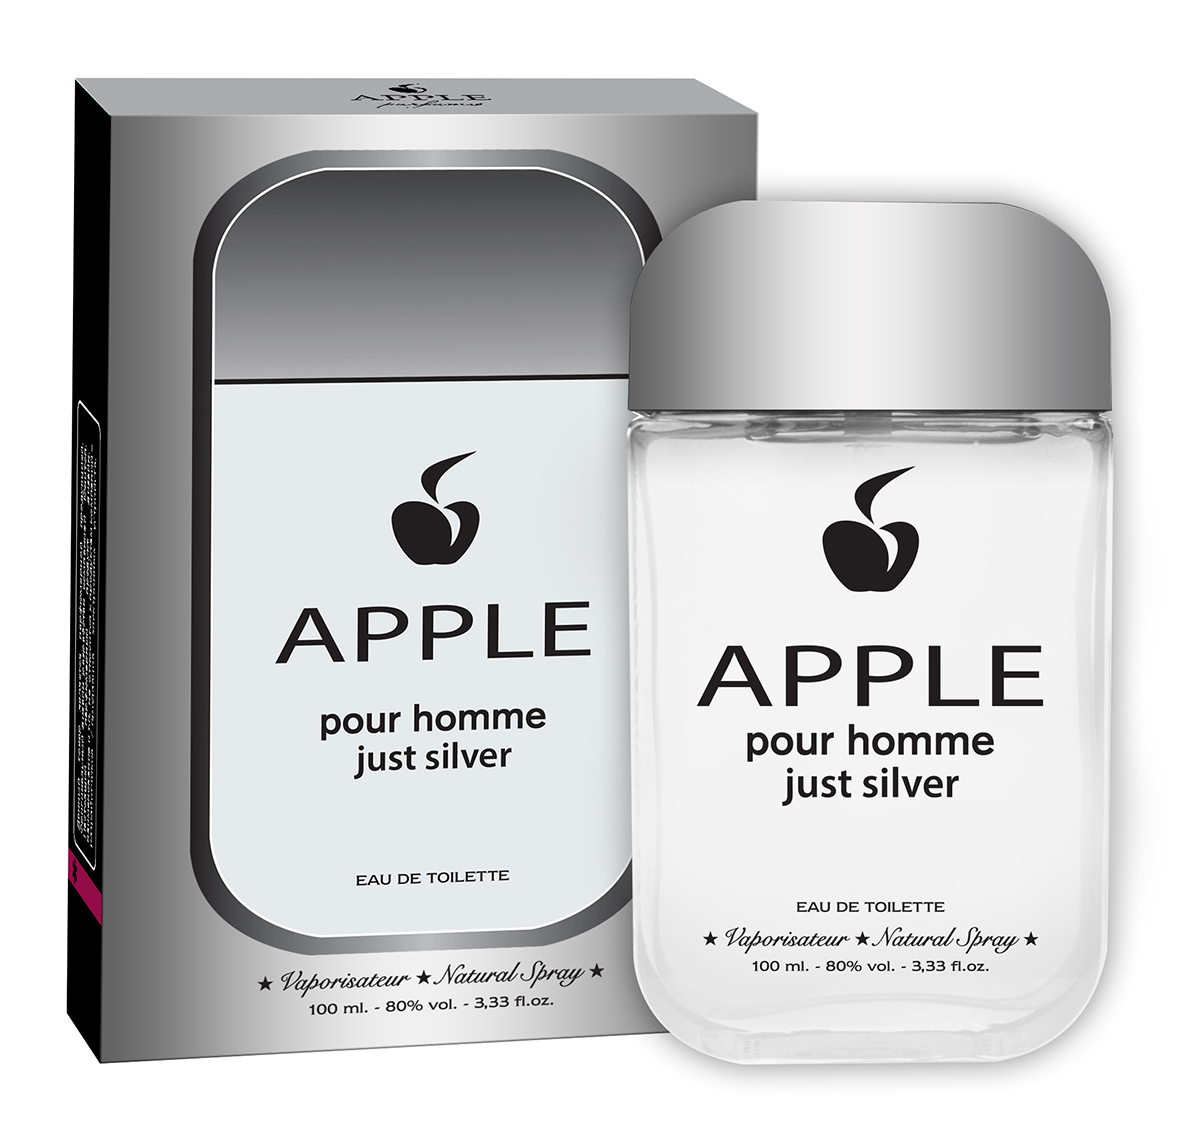 Apple Parfums Туалетная вода Apple Homme Just Silver, 100 мл туалетная вода apple parfums эппл пур хомме джаст силвер apple homme just silver